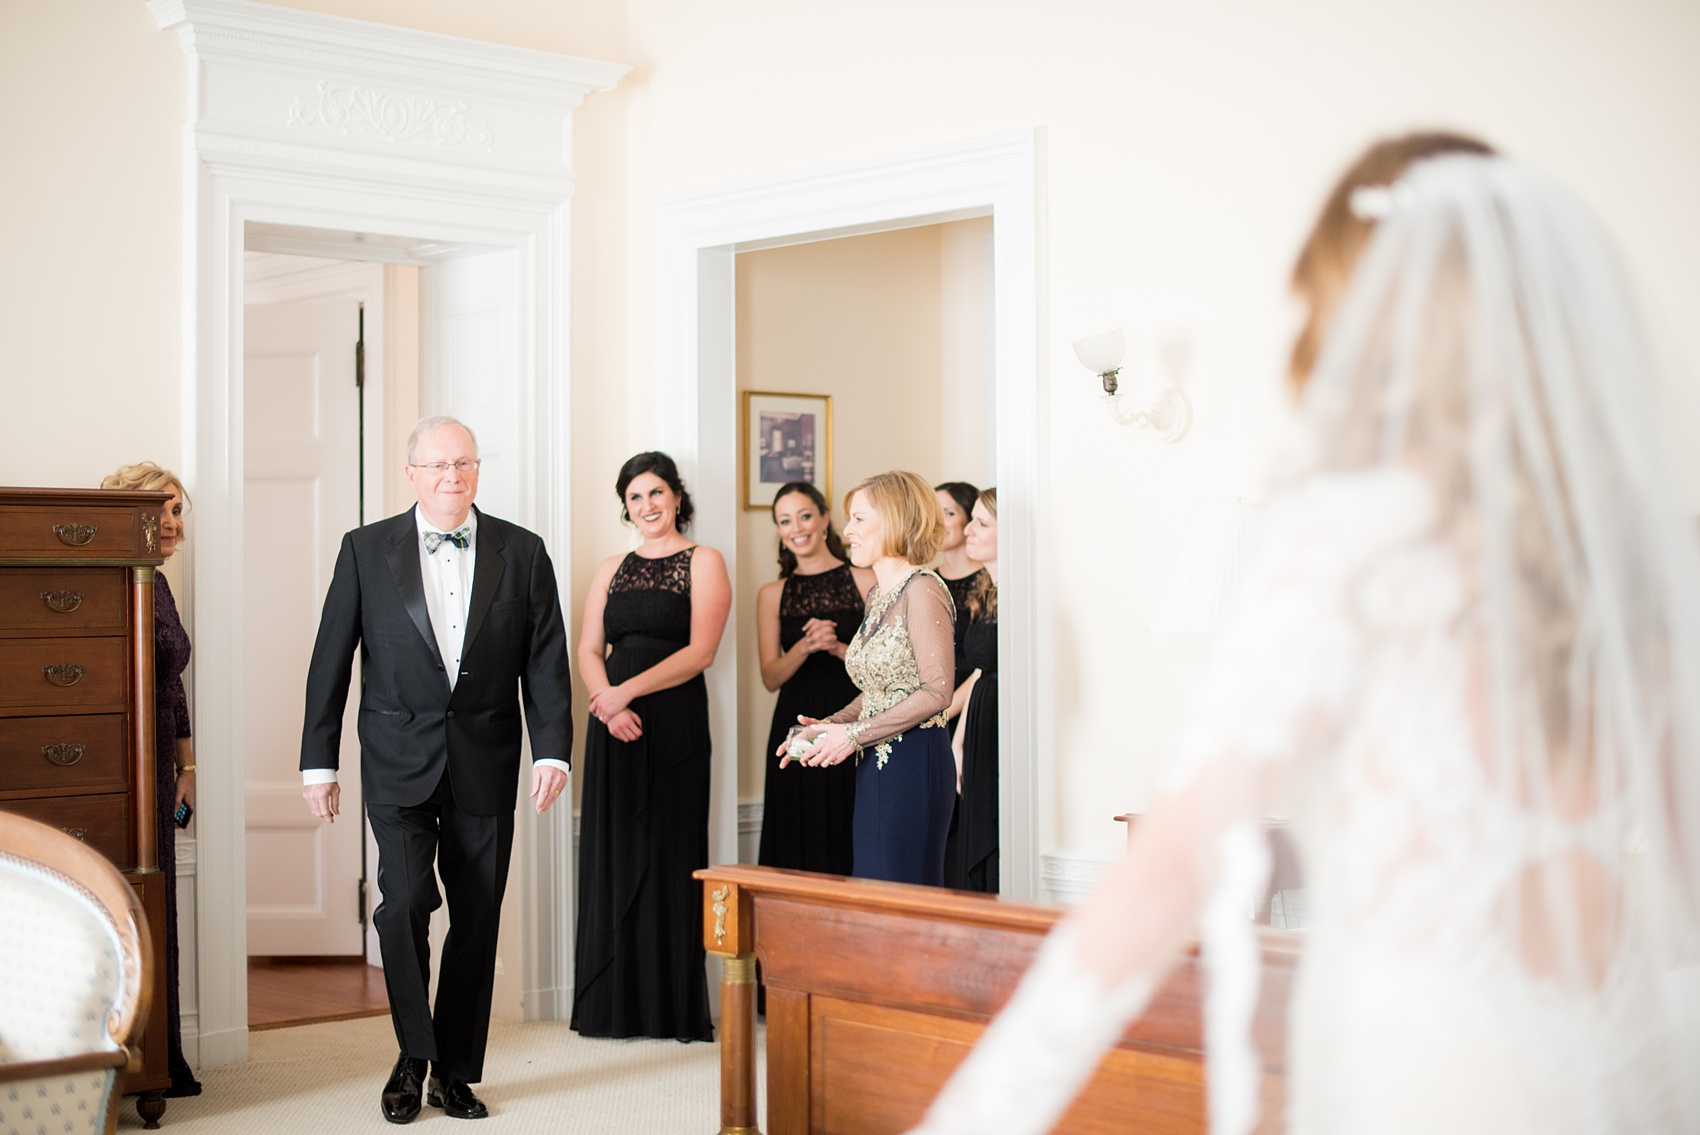 Wedding photos at Sleepy Hollow Country Club for a winter reception in January by Mikkel Paige Photography. A picture of the bride's father seeing her for the first time that day.